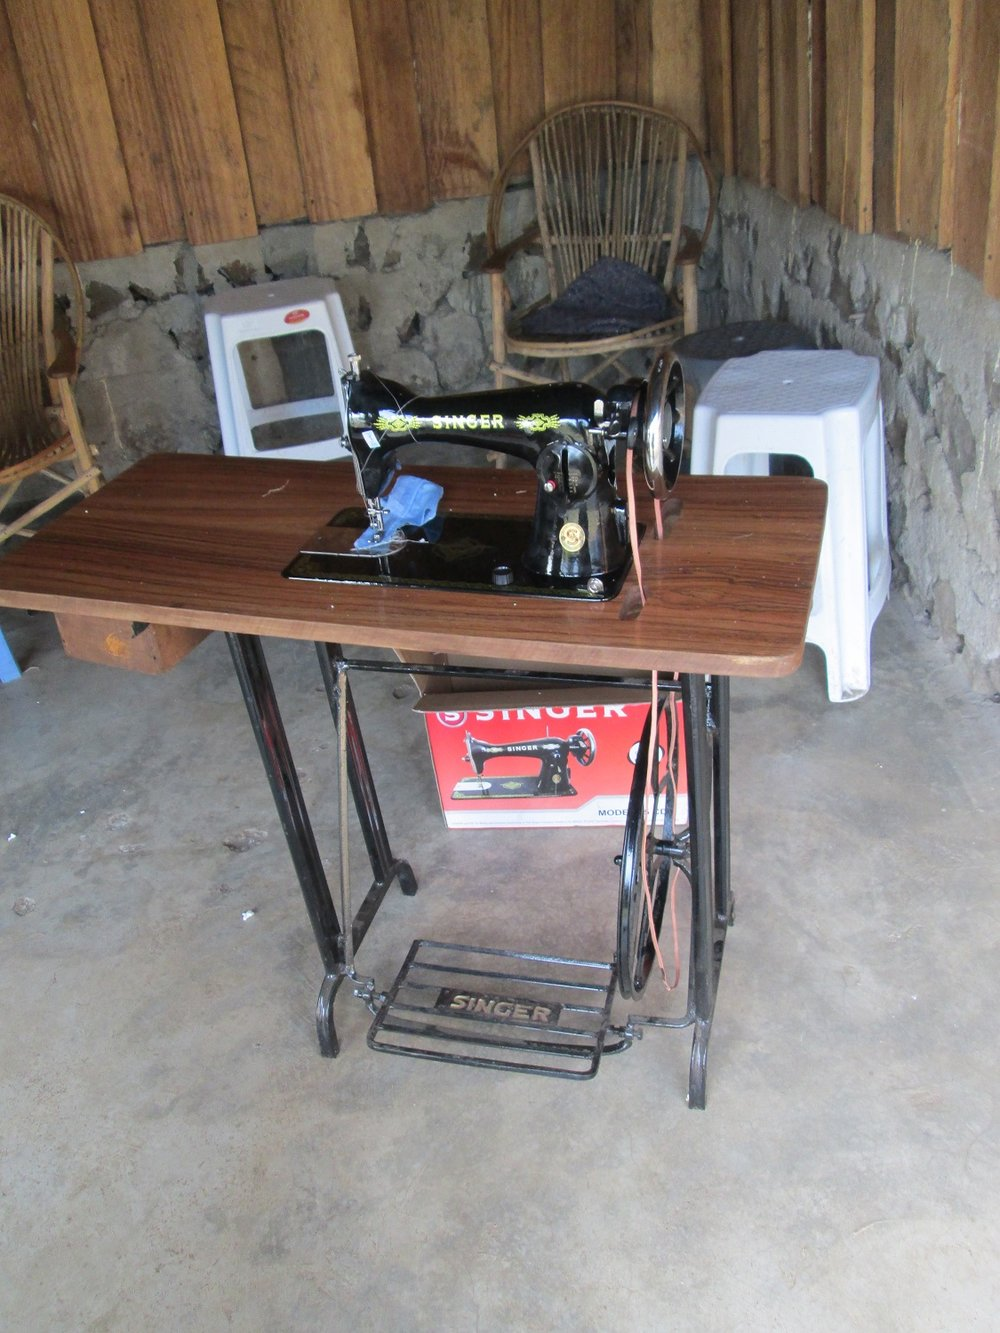 Sewing machine provided via donations